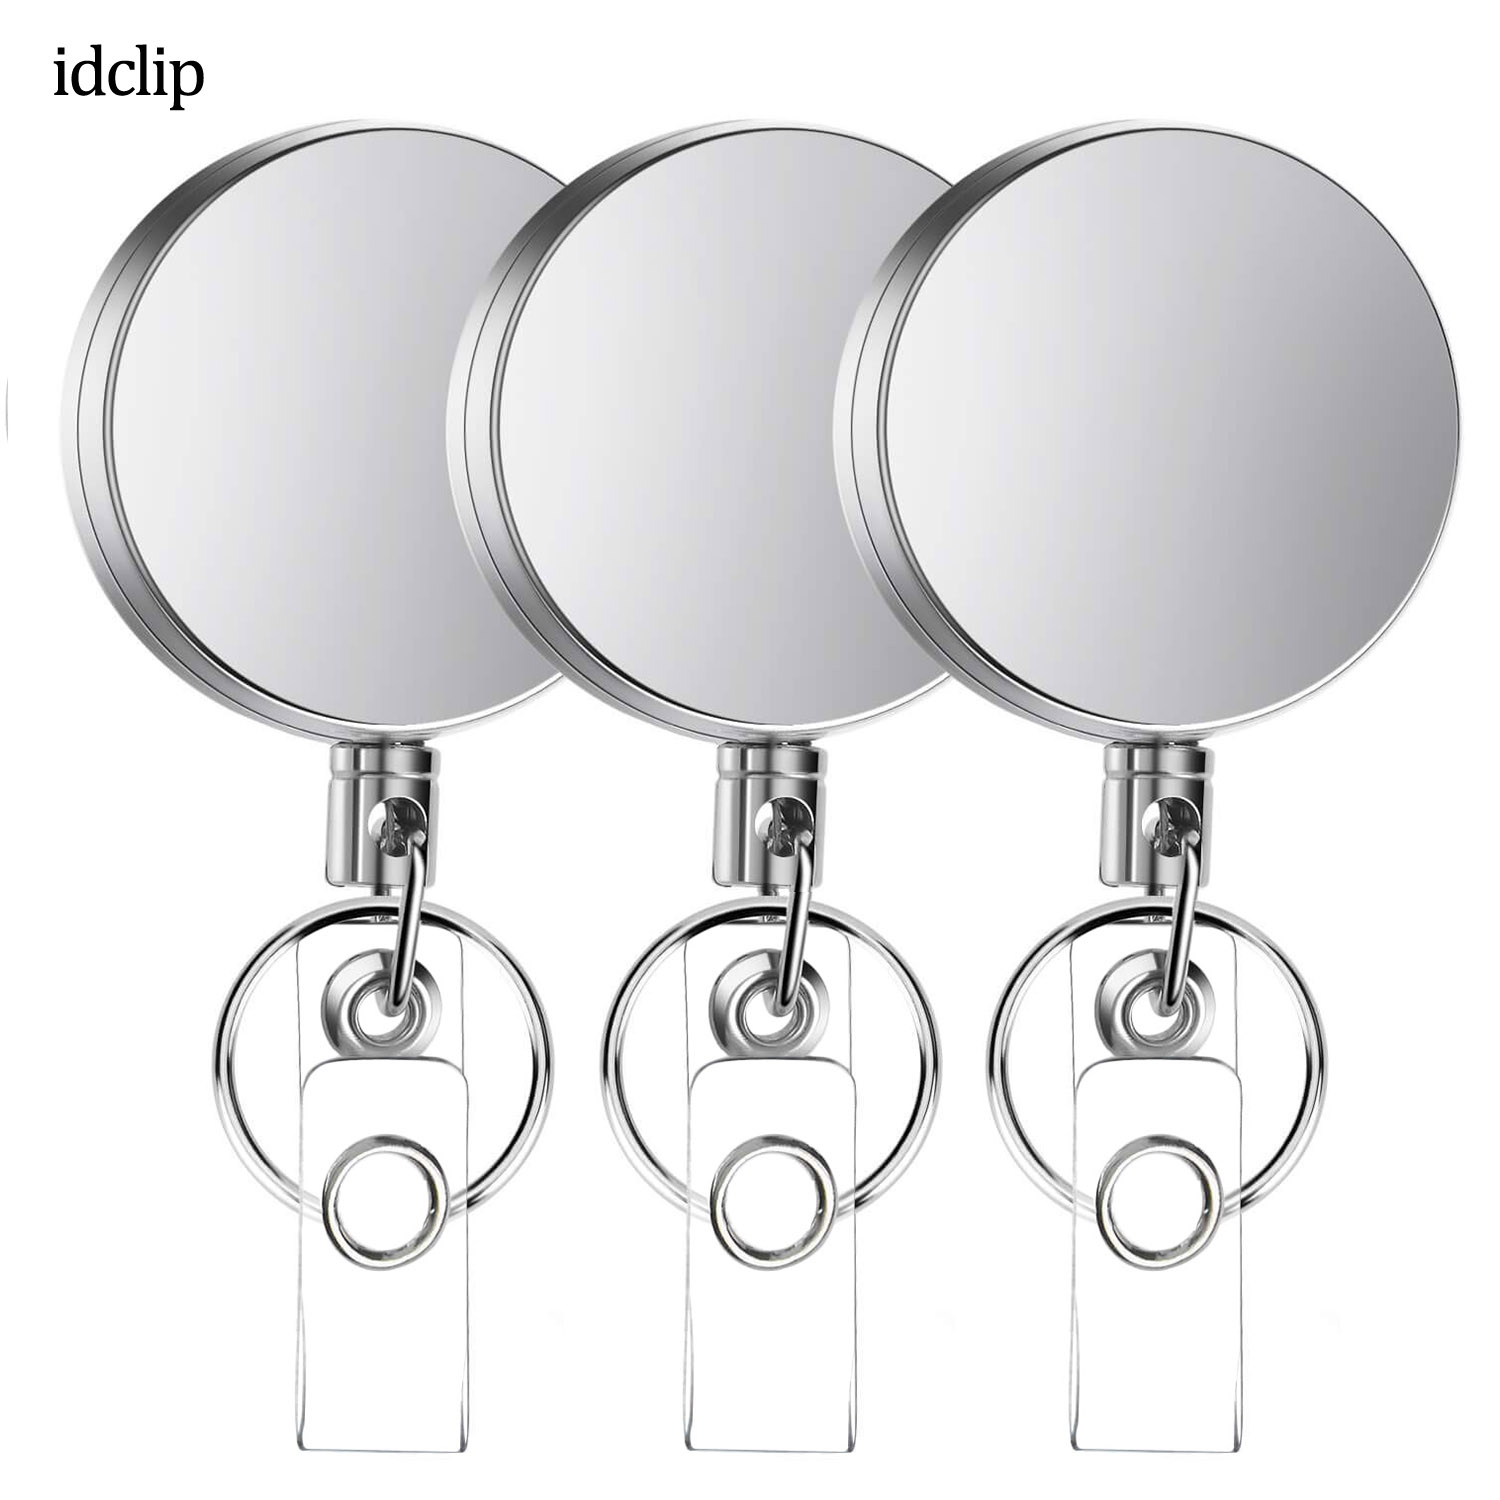 Idclip 3 Pieces Metal Retractable Badge Holder Heavy Duty ID Badge Reels With Key Chain Belt Clip ID / Key Card